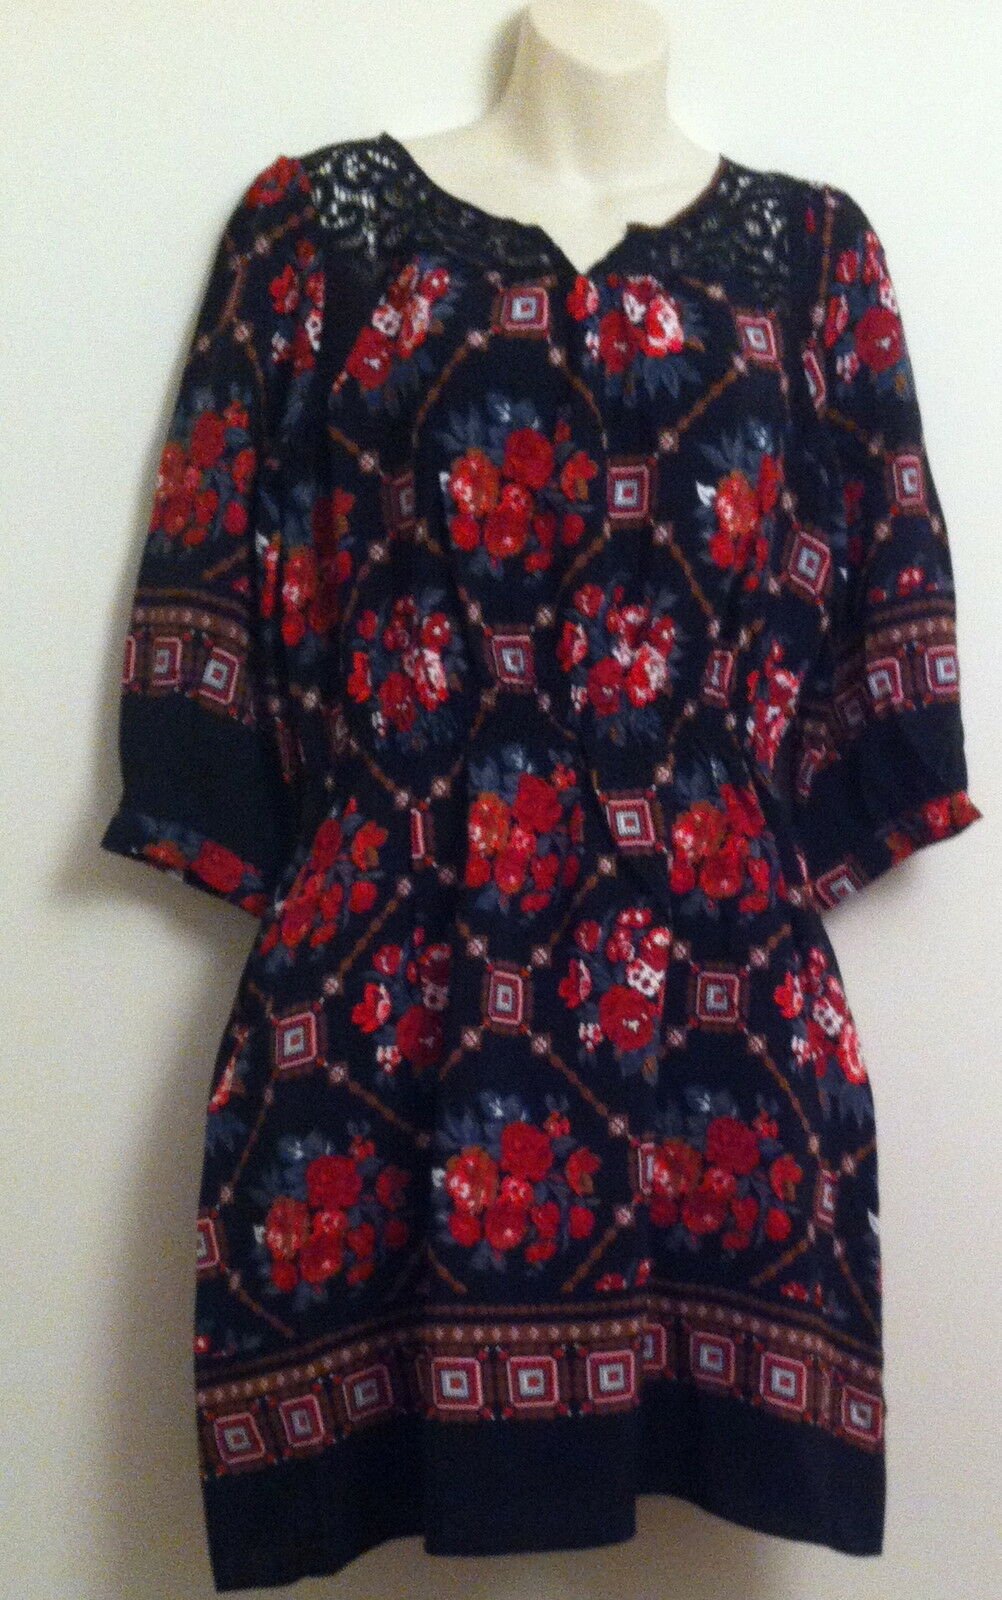 BNWT NEXT RED MIX FLORAL SUMMER DRESS SIZE 14